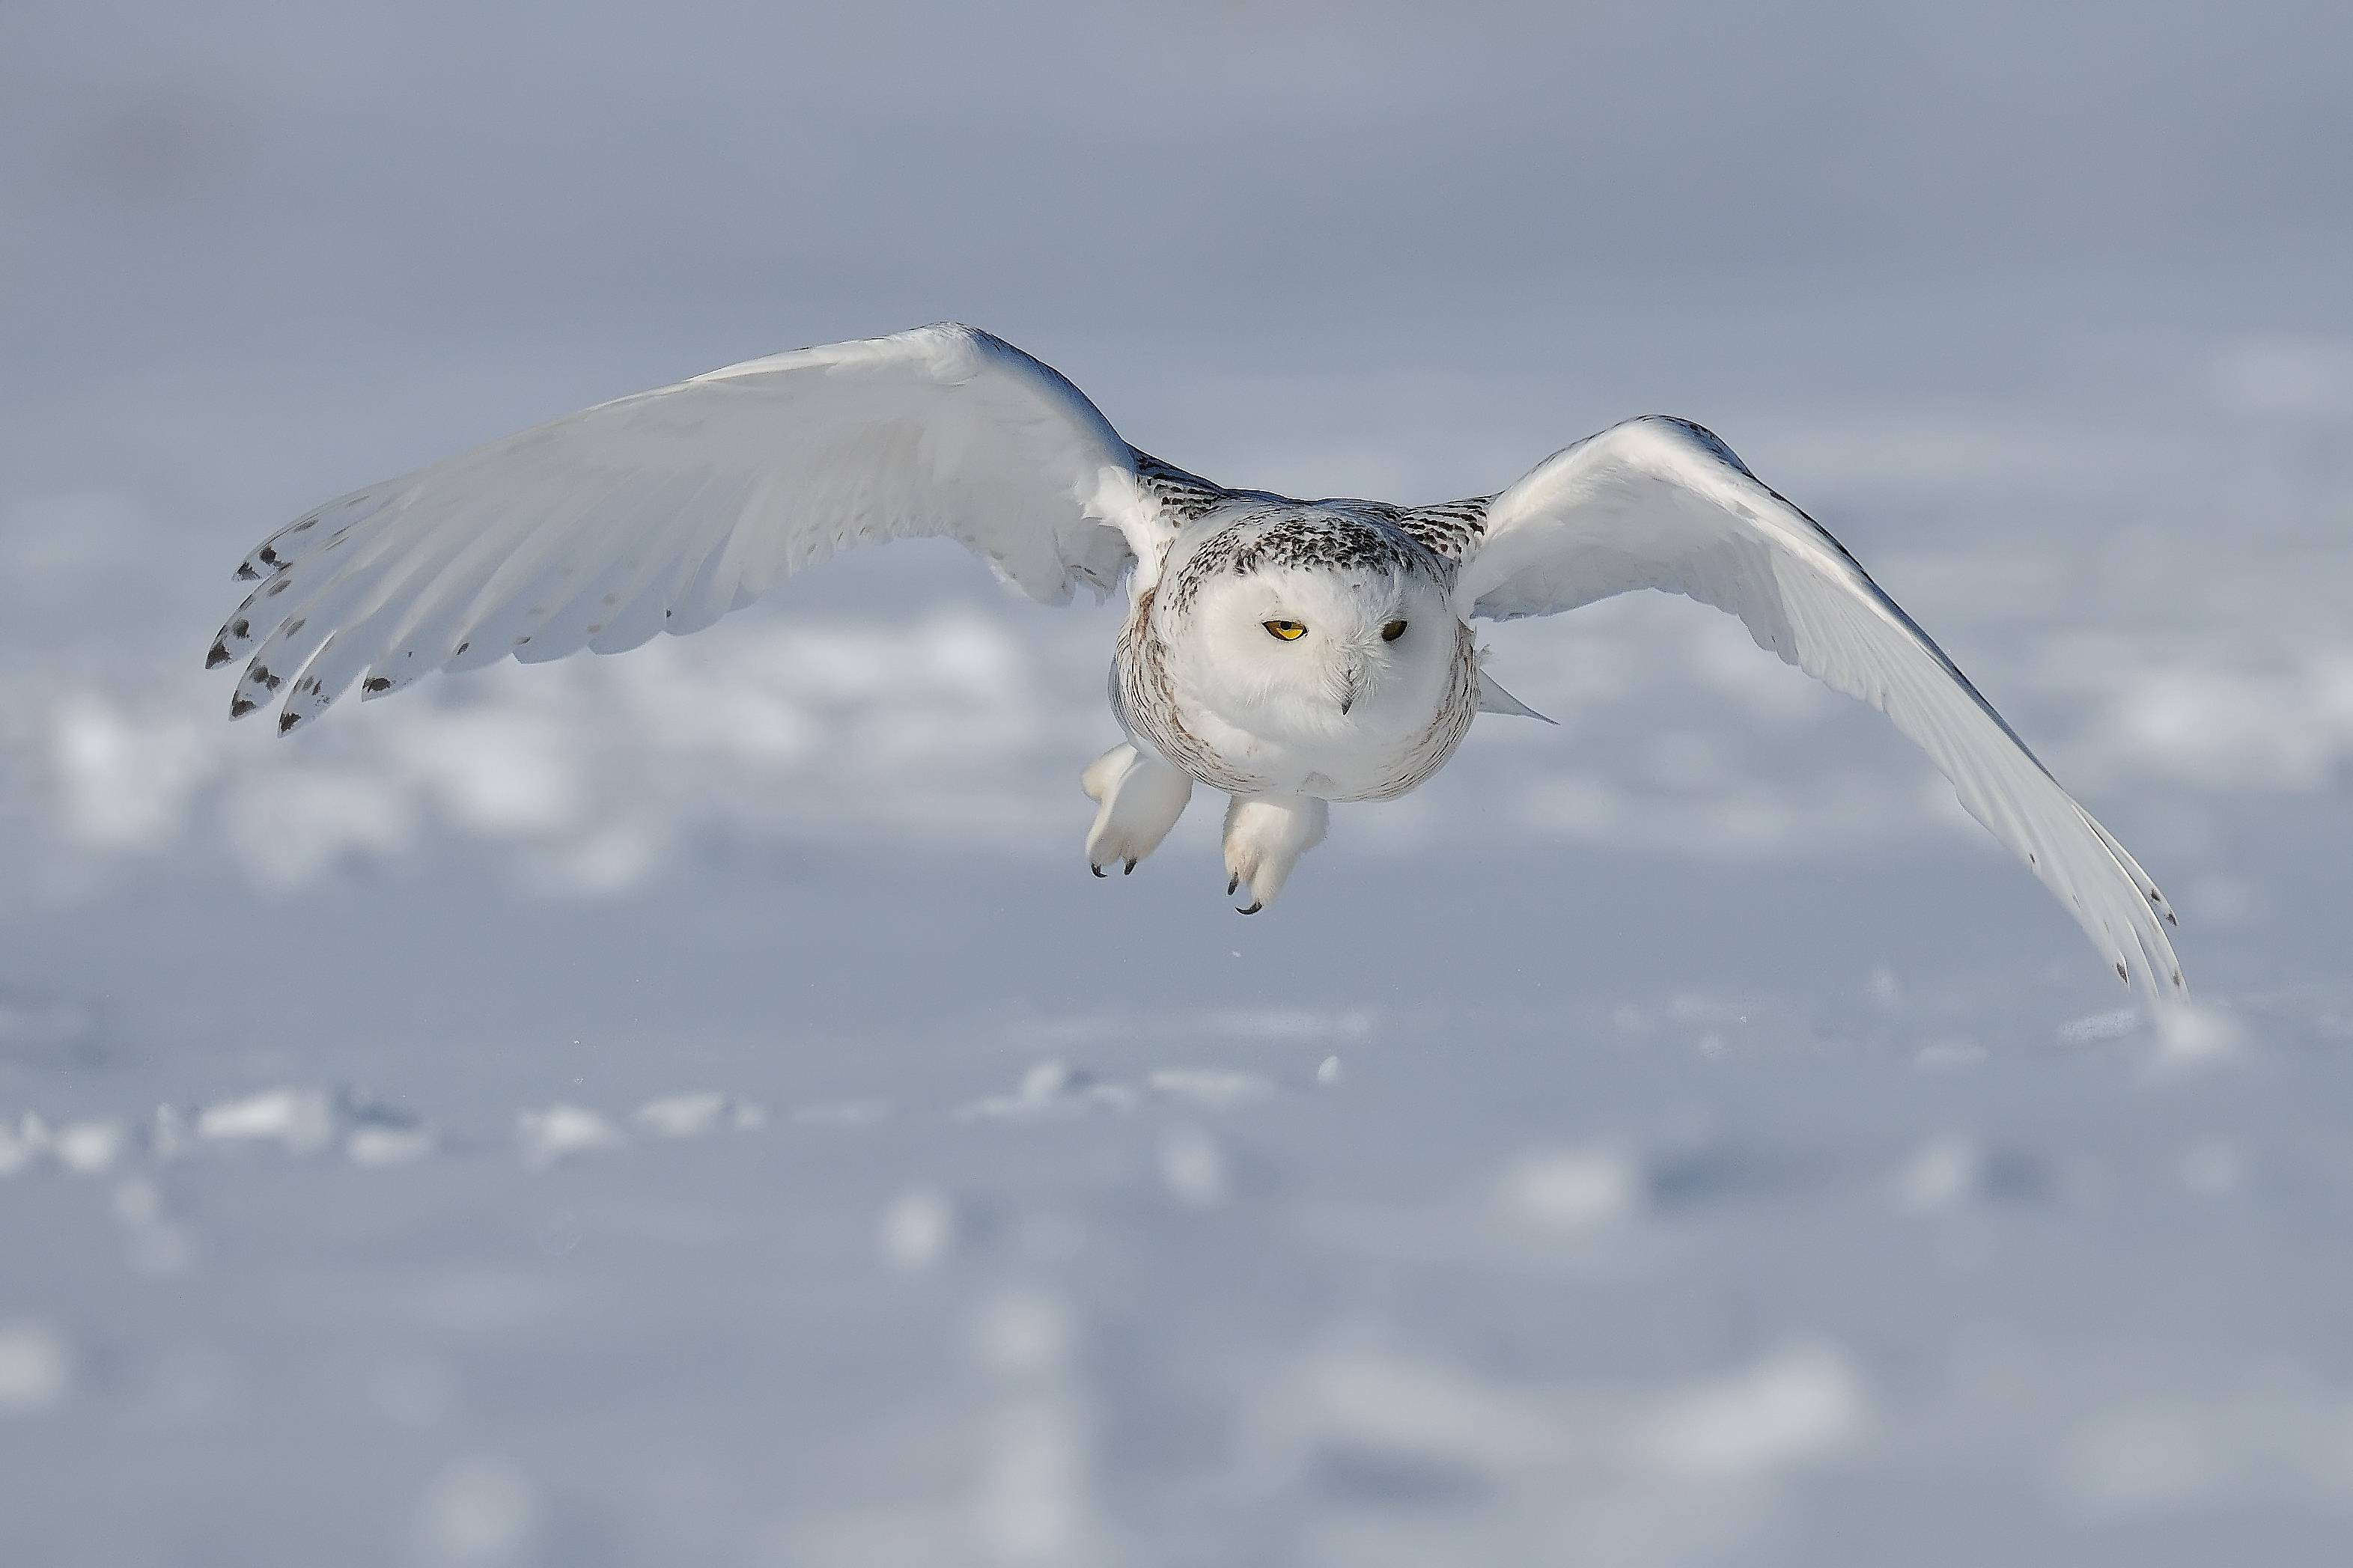 Snowy Owl HD Background Wallpaper 20429 - Baltana